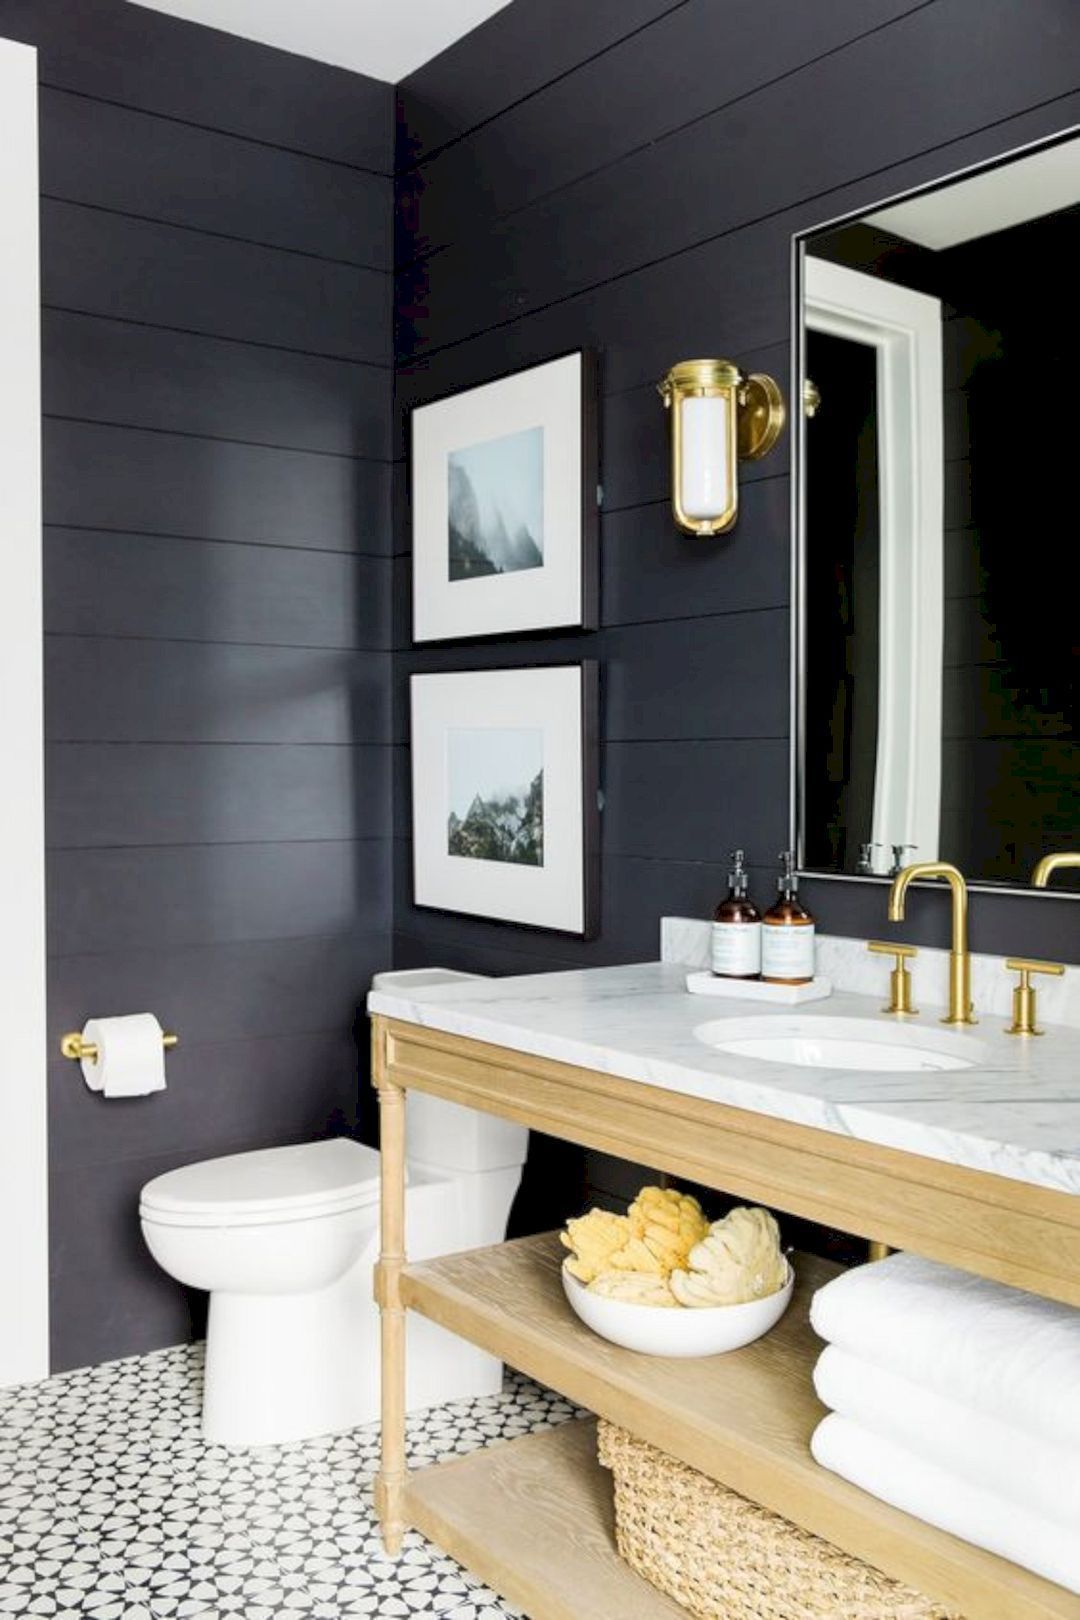 16 Beautiful Bathroom Renovation Ideas https://www ... on master bathroom ideas, unique small bathroom storage, unique apartment ideas, unique vessel sink ideas, unique exterior house designs, unique bathroom themes, unique kitchen remodel, unique bathroom accessory sets, unique antique bathroom vanities, unique roofing ideas, unique kitchen ideas, unique showers, unique brick house designs, different bathroom ideas, unique upholstery ideas, unique bathroom stalls, bathroom makeover ideas, man's bathroom ideas, ocean themed bathroom ideas, unique vanities for bathrooms,